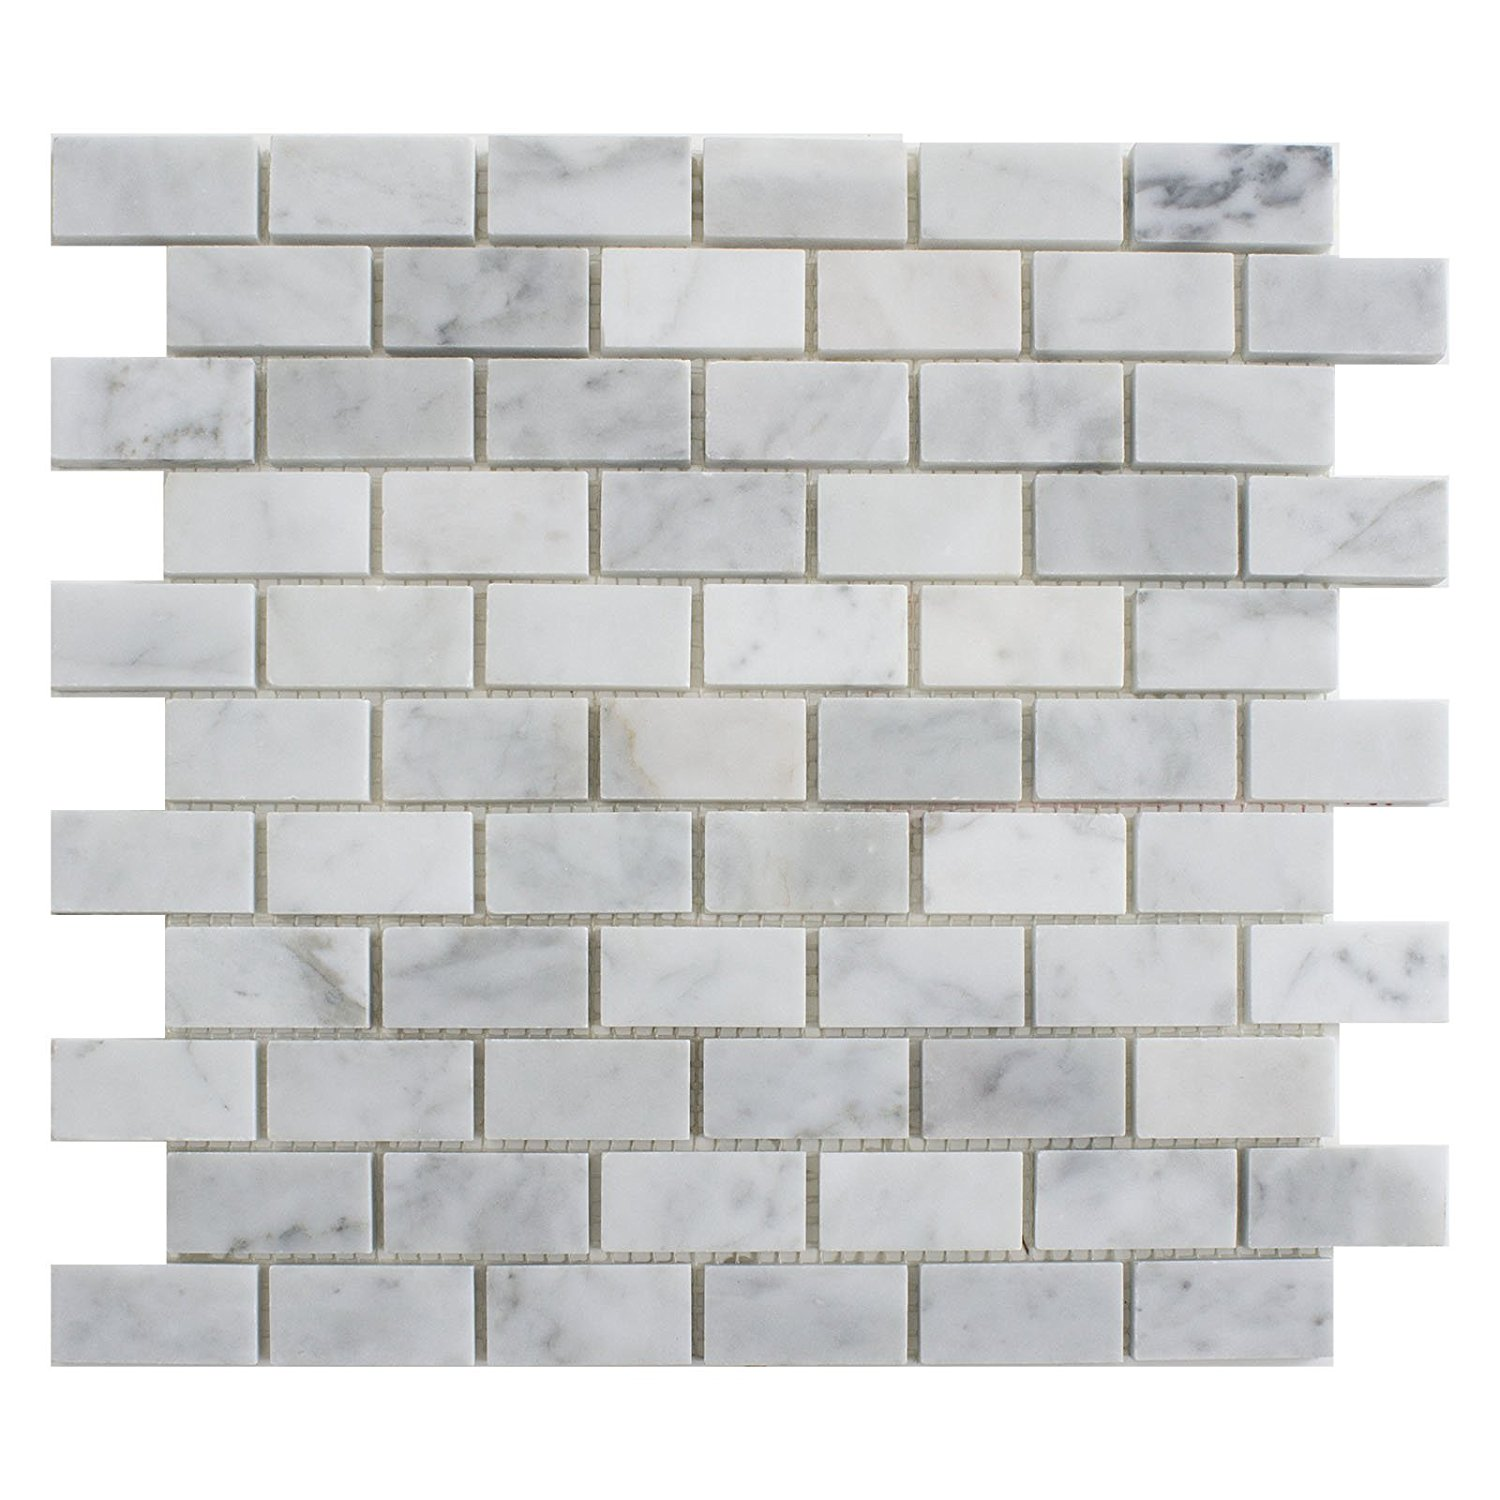 "Carrara White Marble Mosaic Tile, CWMM0102, Chip Size 1""X2"" Brick, 12""X12""X5/16"", Polished (Lot of 50 Sheets)"